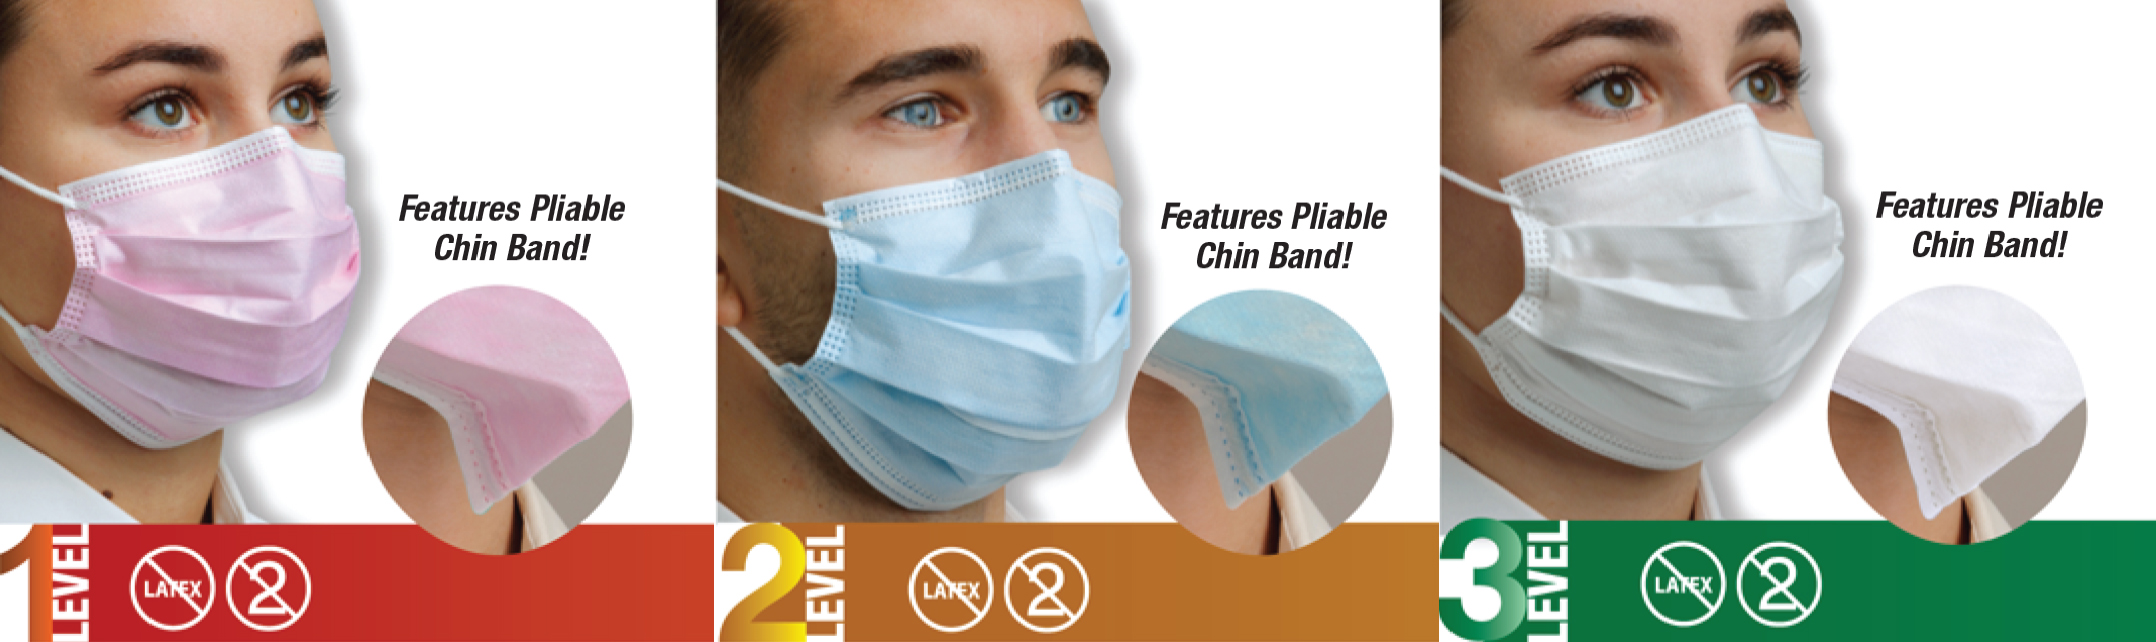 medical surgical mask level 1